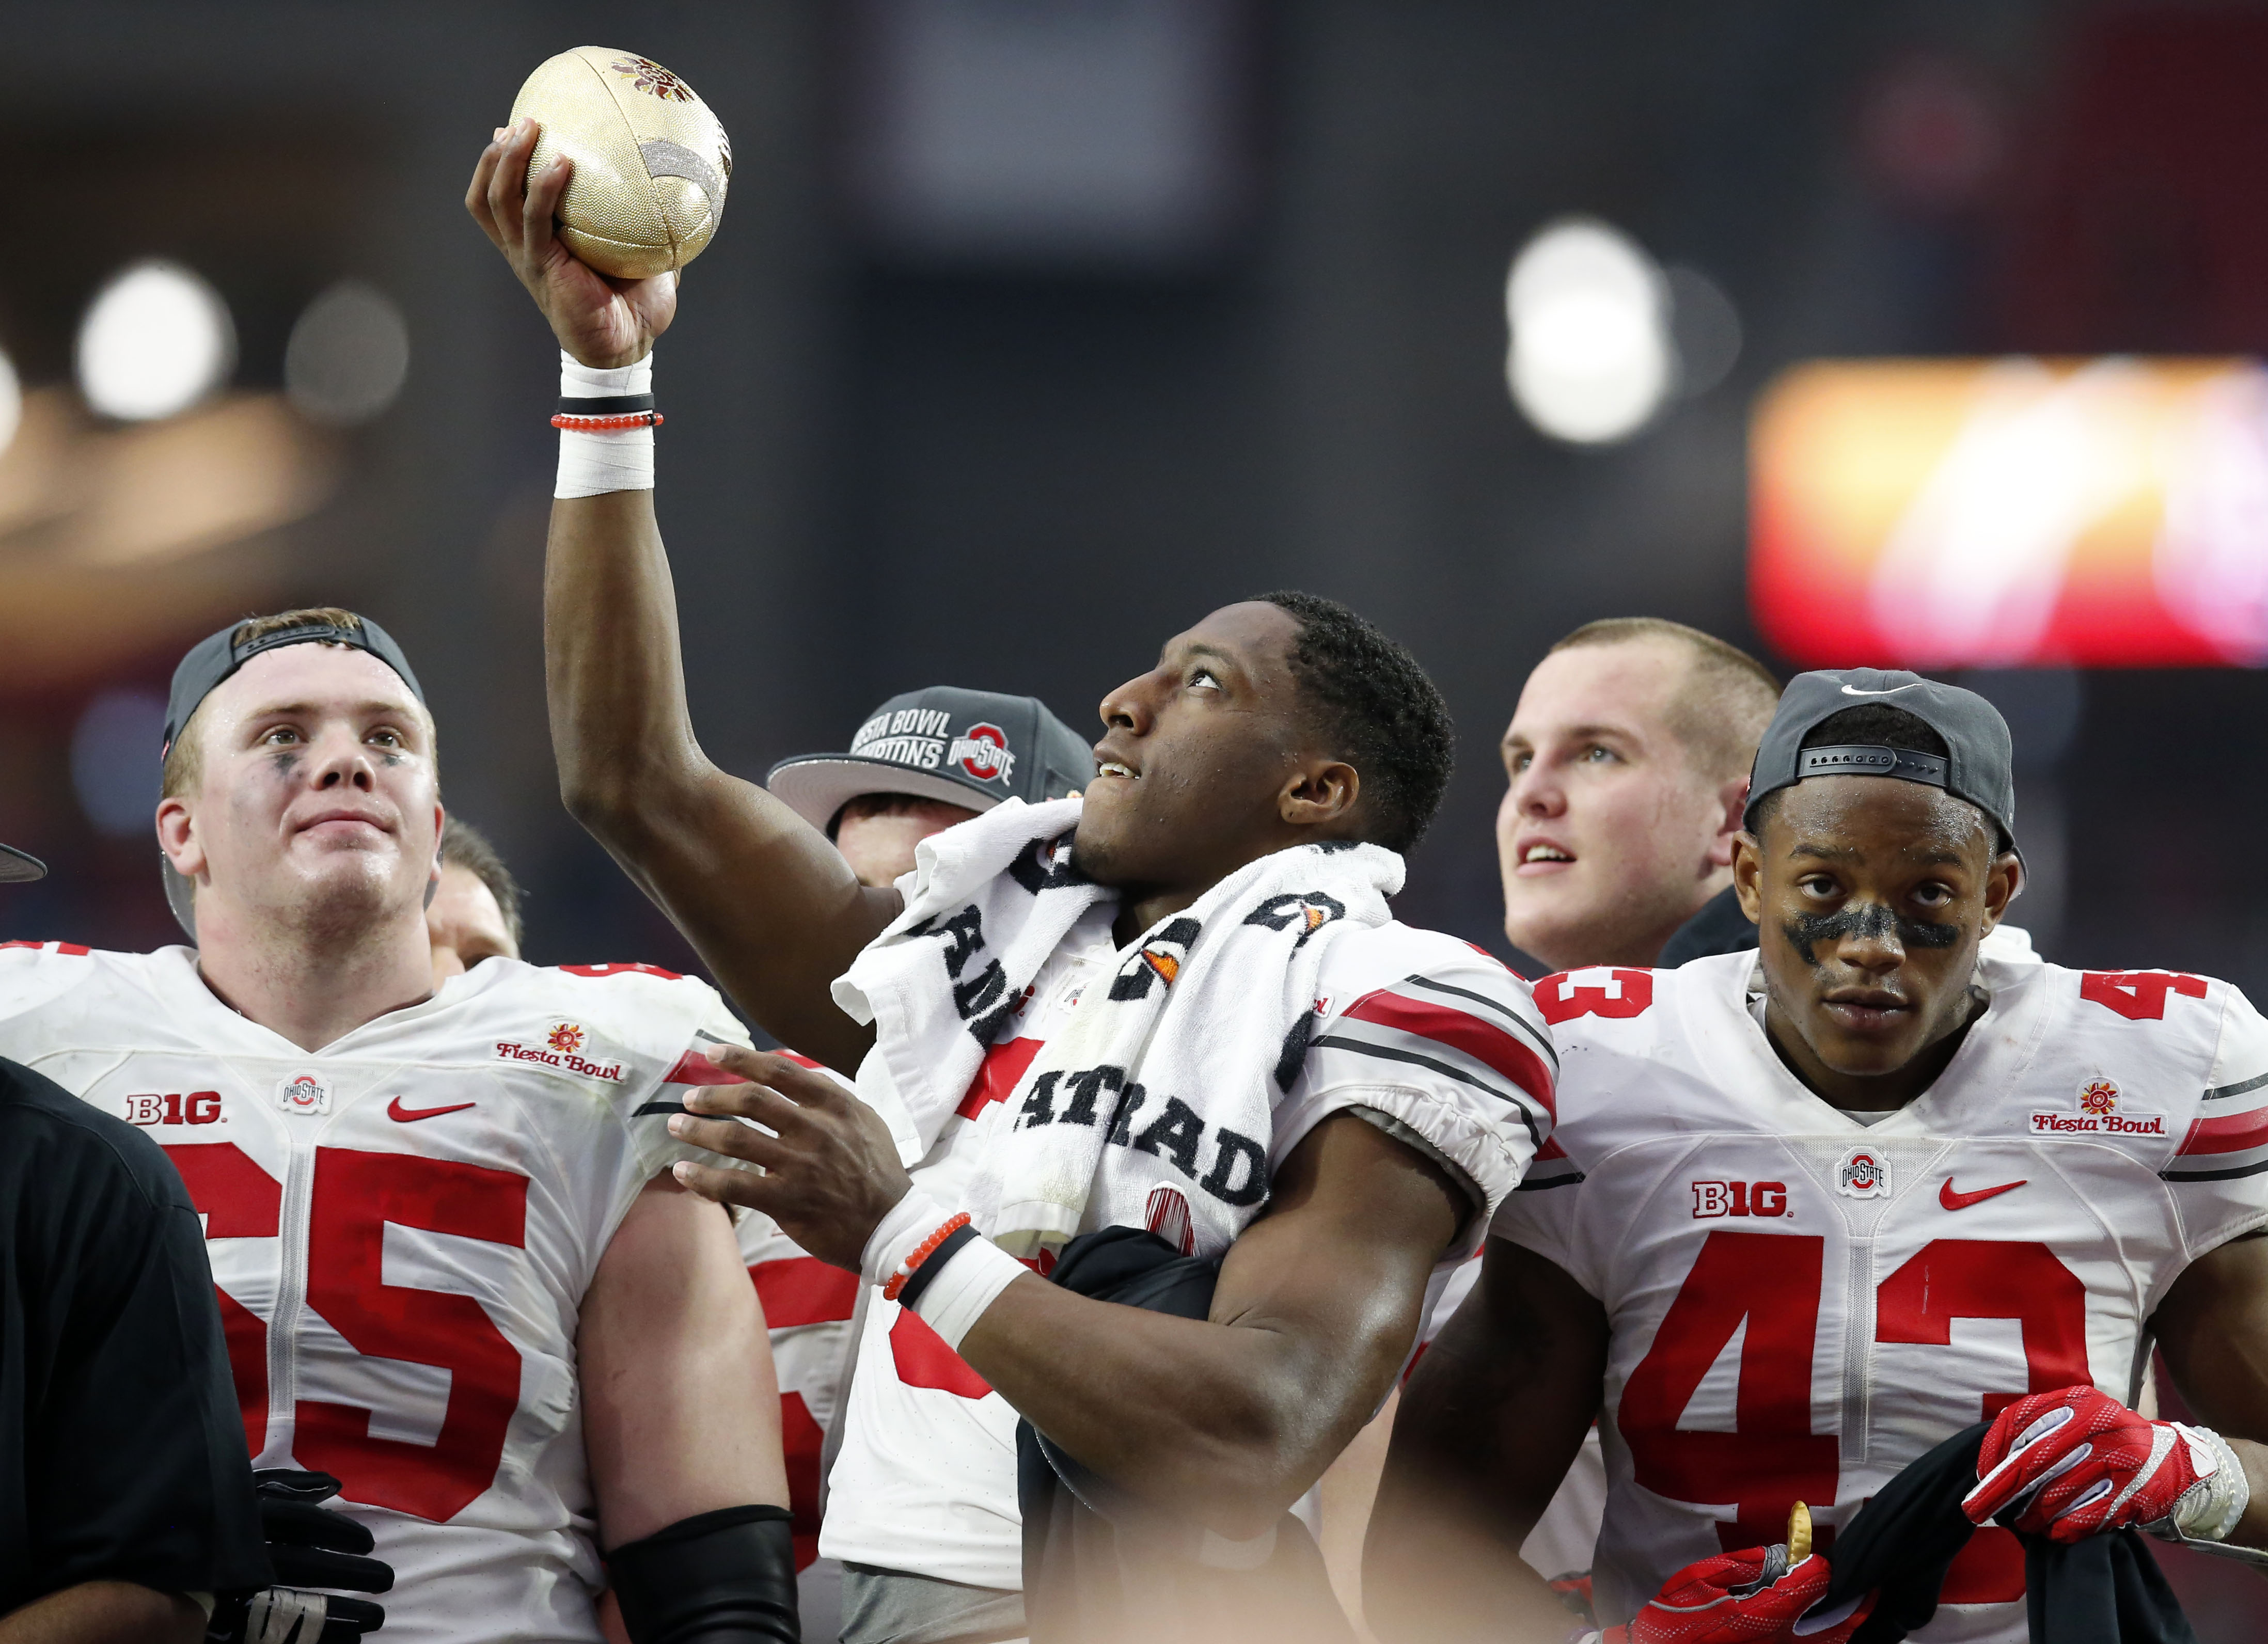 Ohio State wide receiver Michael Thomas (3) raises the champions trophy after the Fiesta Bowl NCAA College football game against Notre Dame, Friday, Jan. 1, 2016, in Glendale, Ariz. Ohio State won 44-28. (AP Photo/Rick Scuteri)